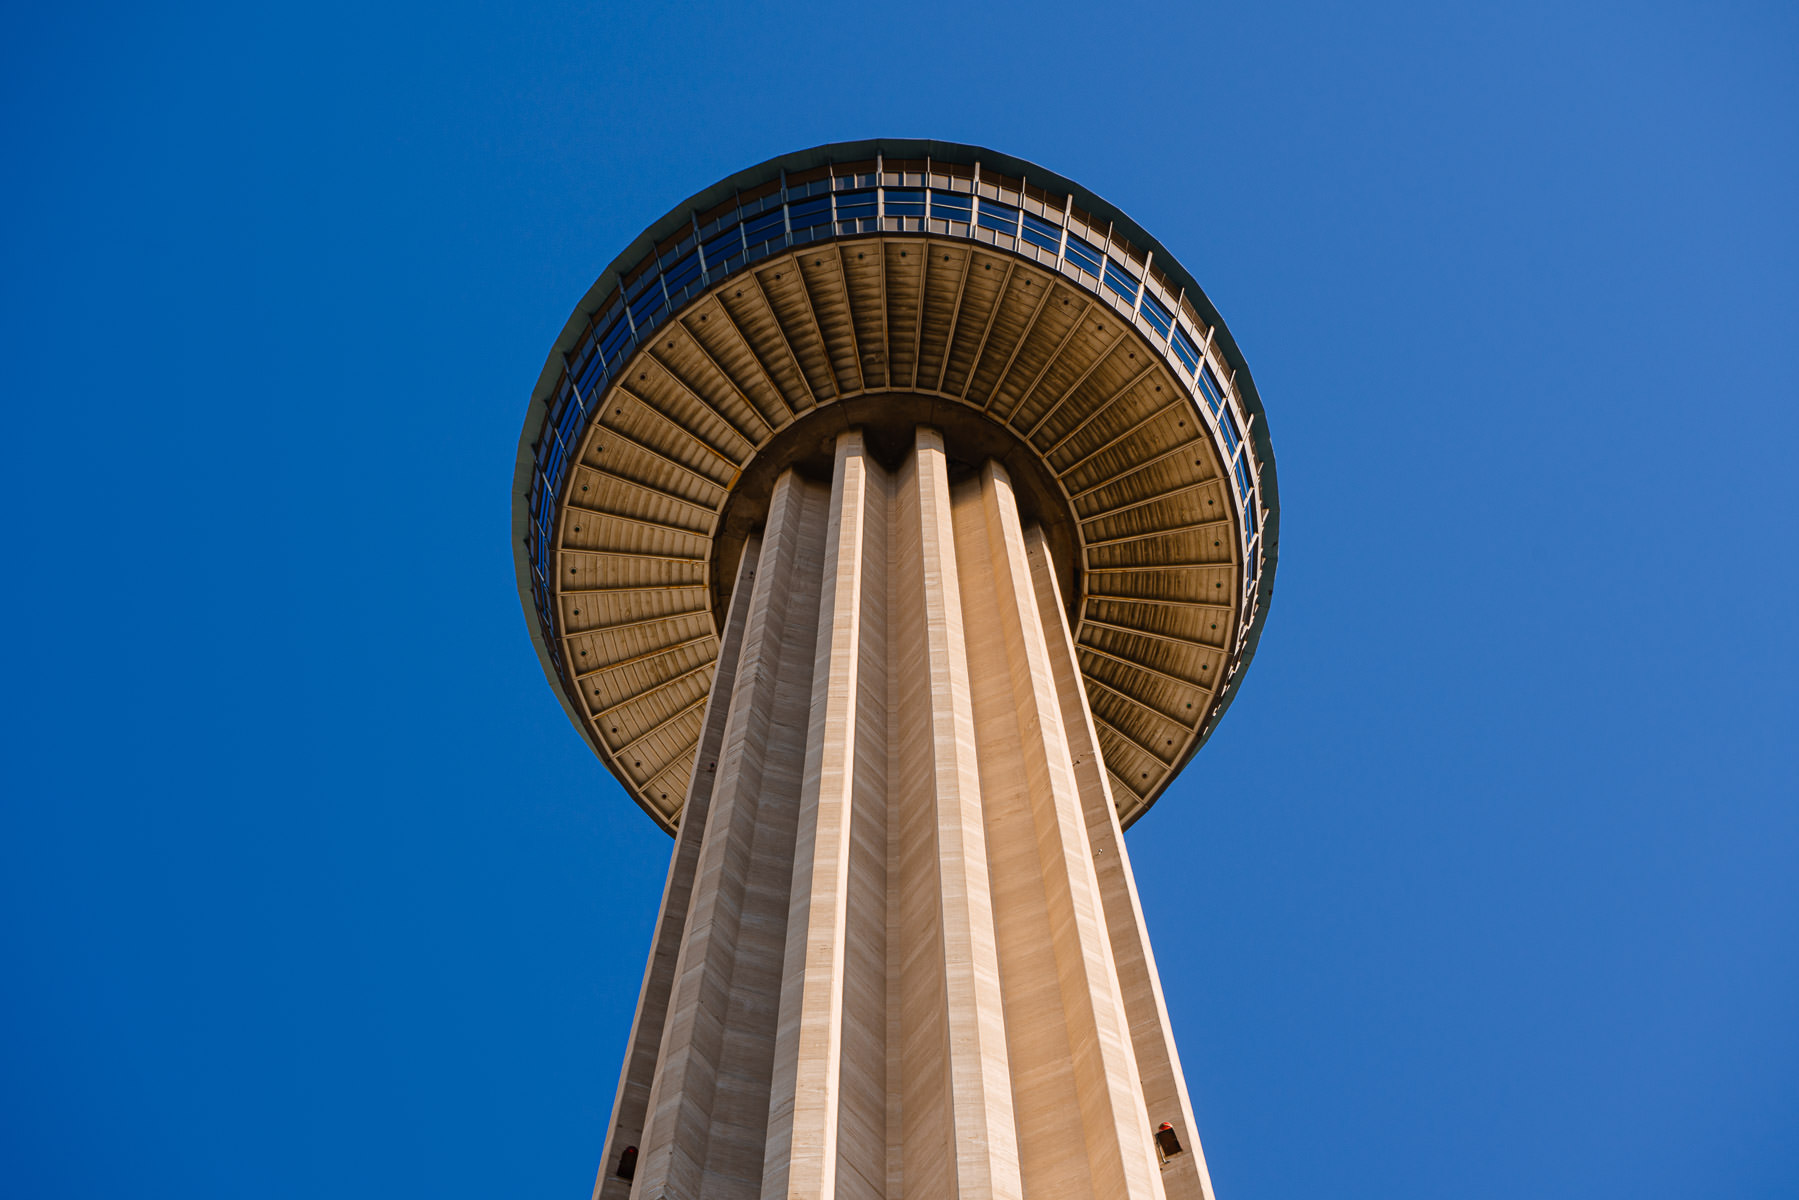 The 750-foot-tall Tower of the Americas rises into the clear blue sky over San Antonio, Texas.